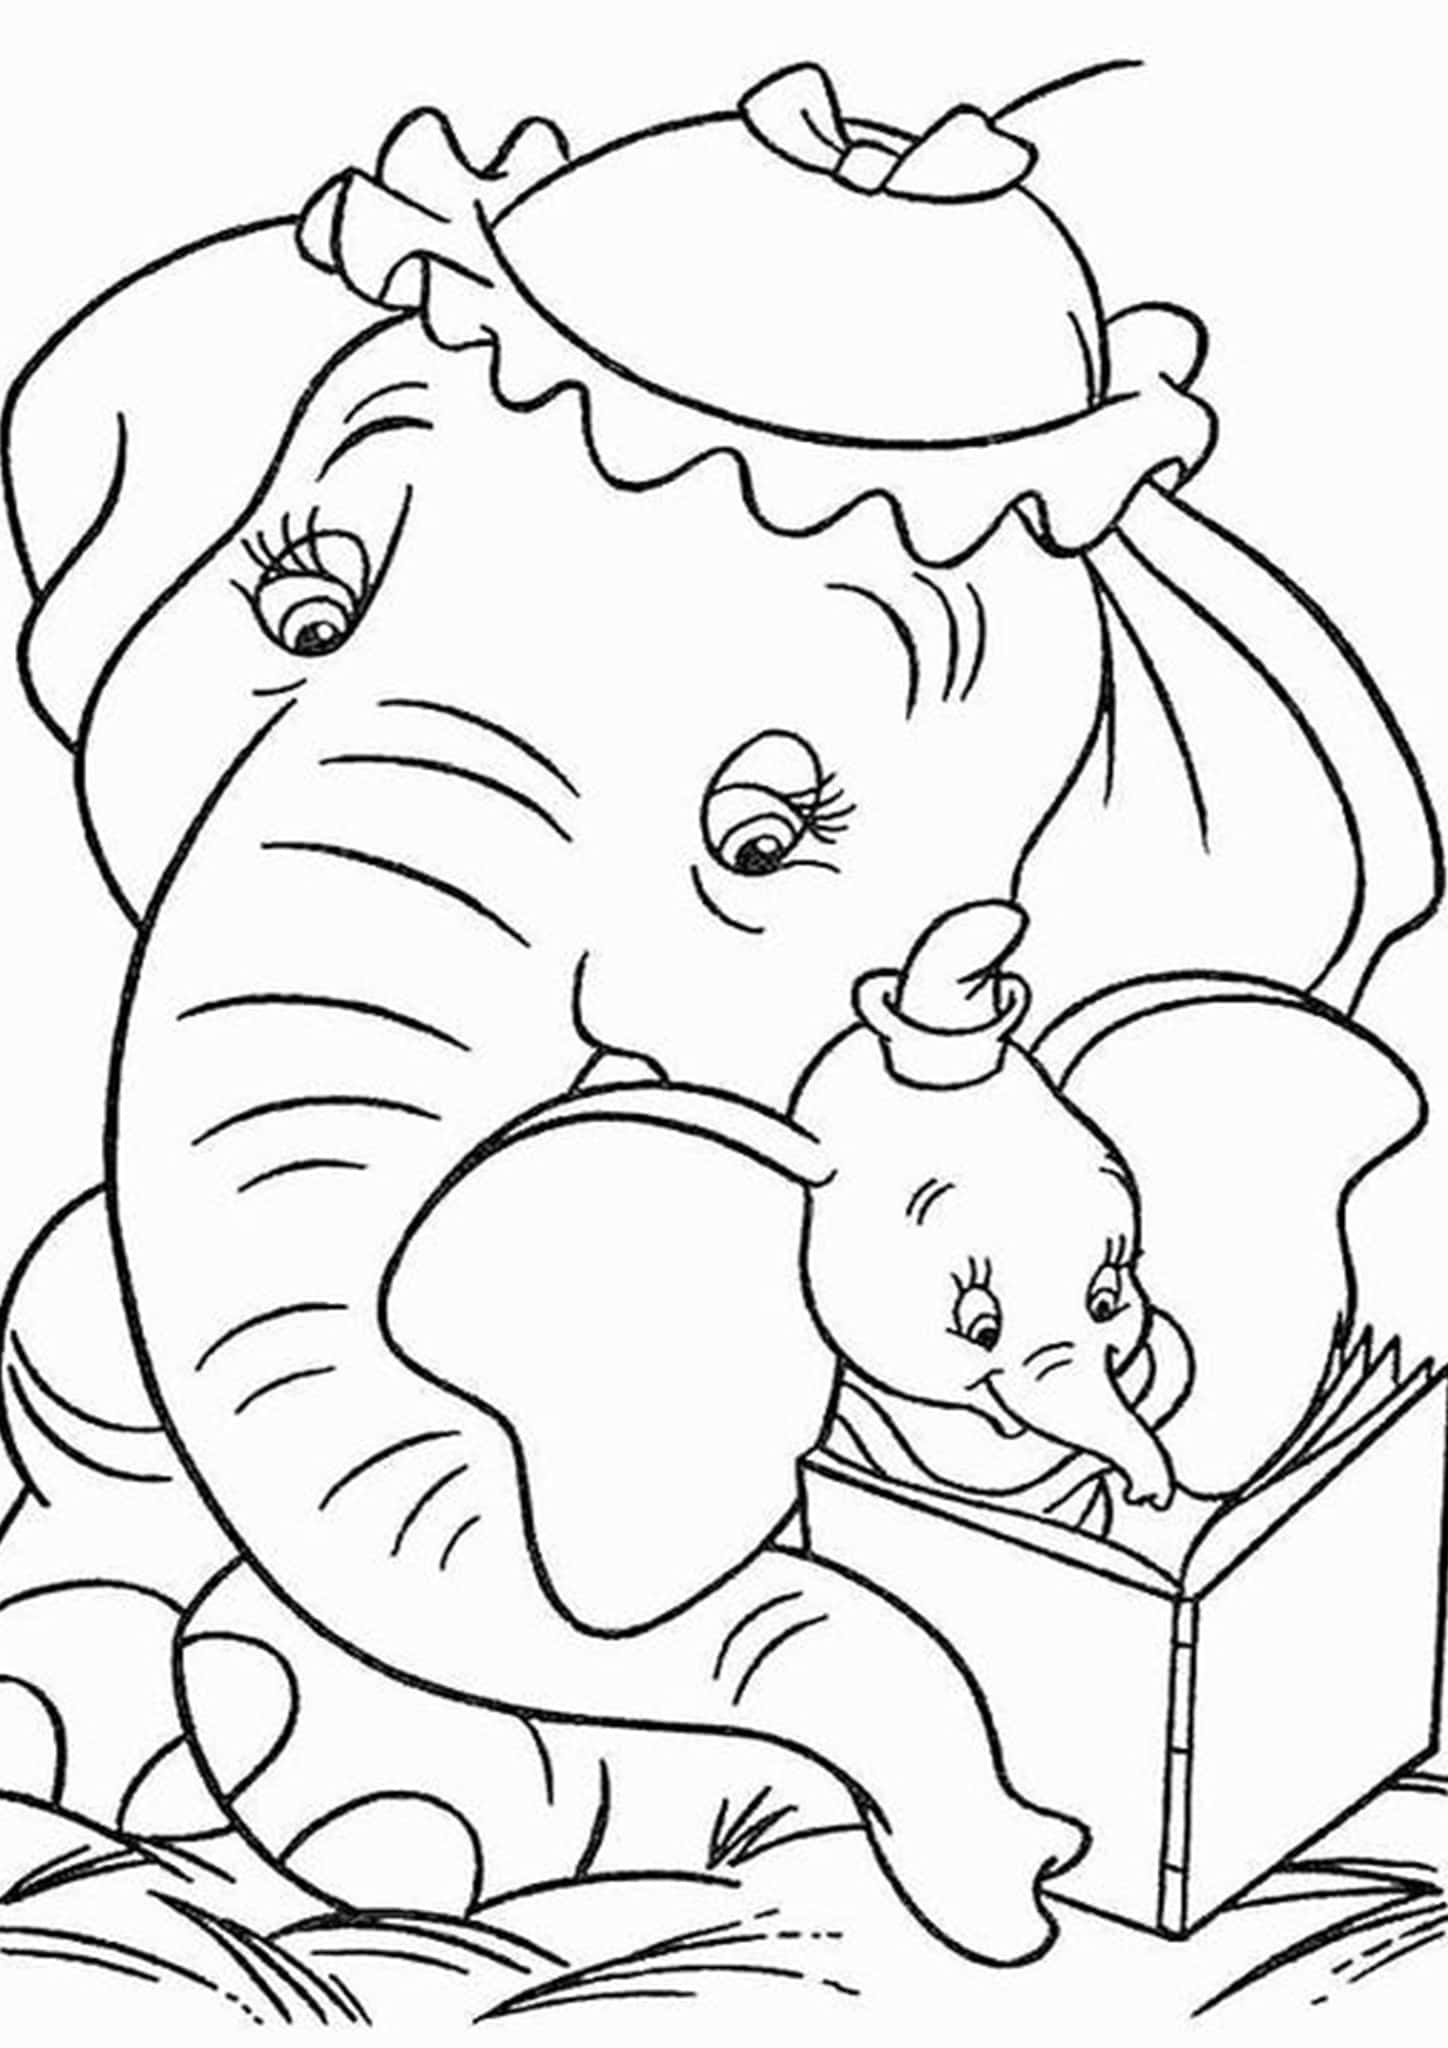 simple elephant coloring page free elephant coloring pages simple coloring page elephant